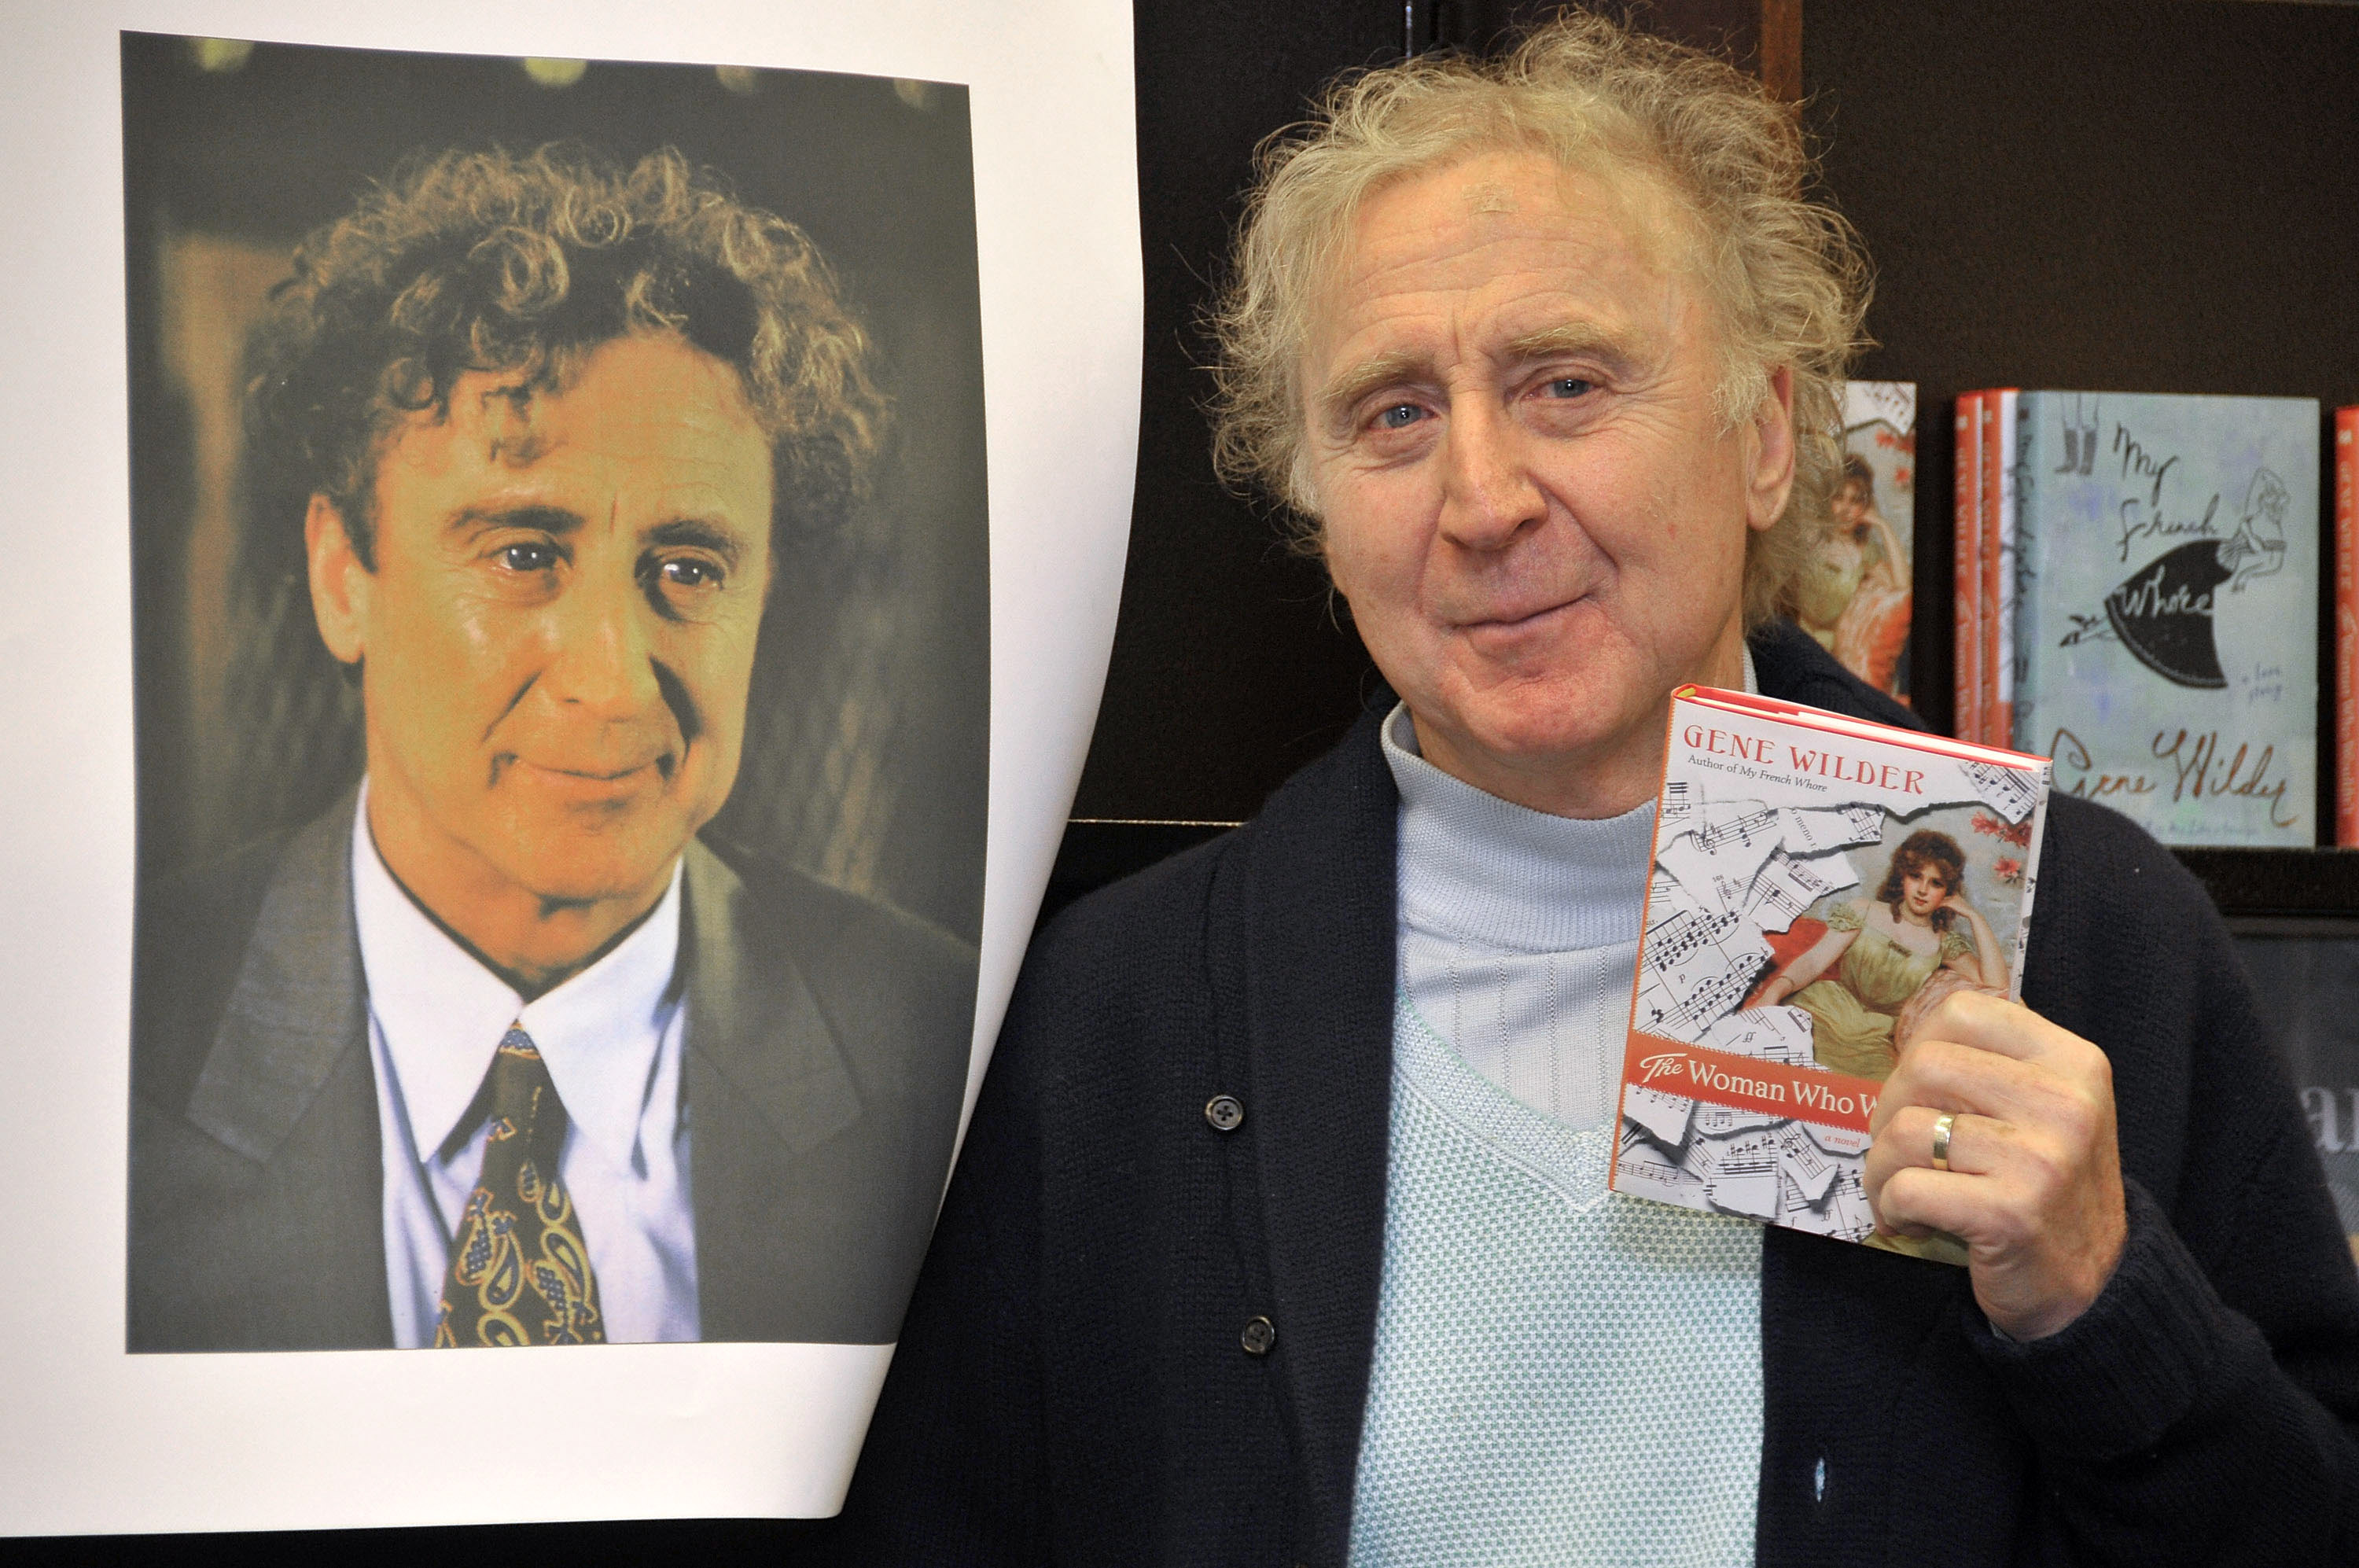 Actor and author Gene Wilder autographs copies of his new book 'The Woman Who Wouldn't' at Barnes & Noble Bookstore at The Grove on March 17, 2008 in West Hollywood, California.  (Getty)